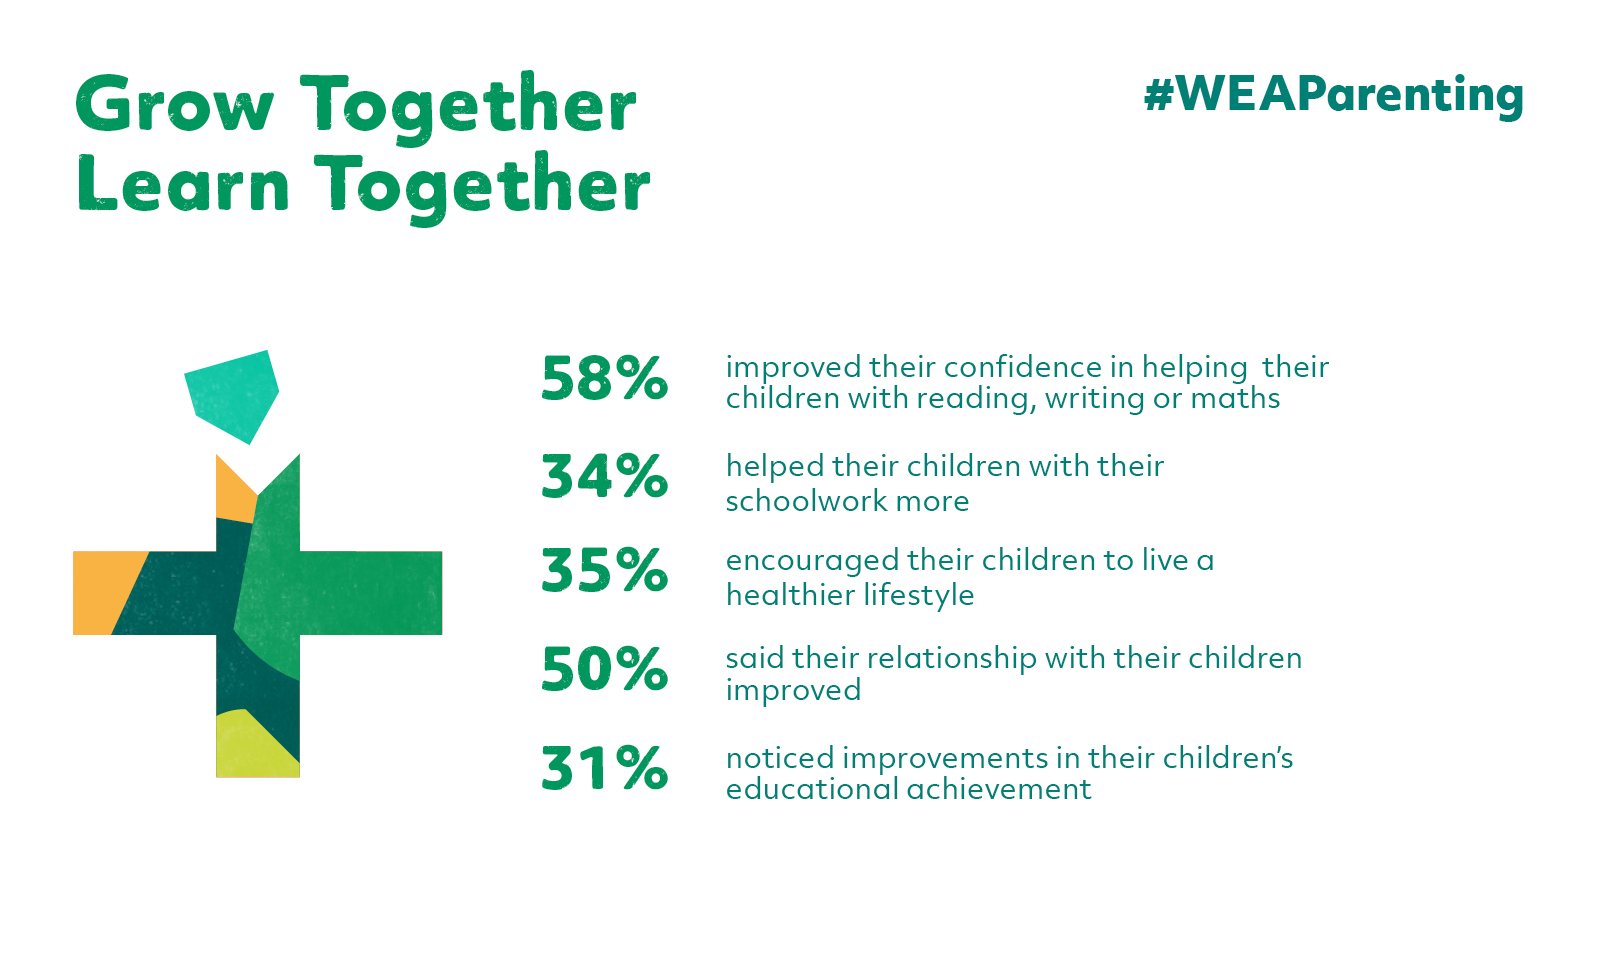 Statistics from WEA's Grow Together - Learn Together campaign, #WEAParenting